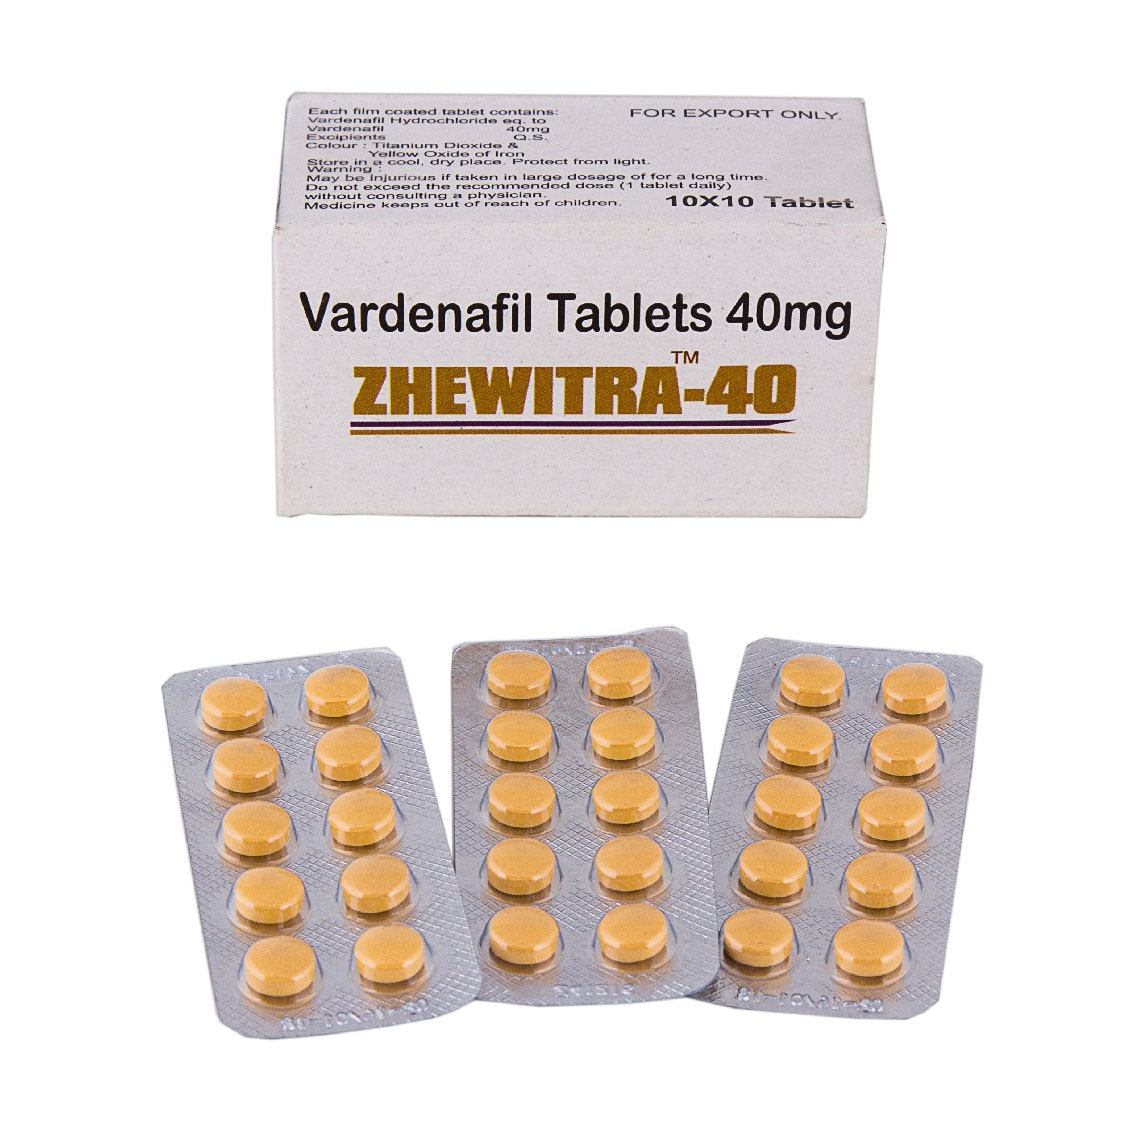 Generic levitra for sale